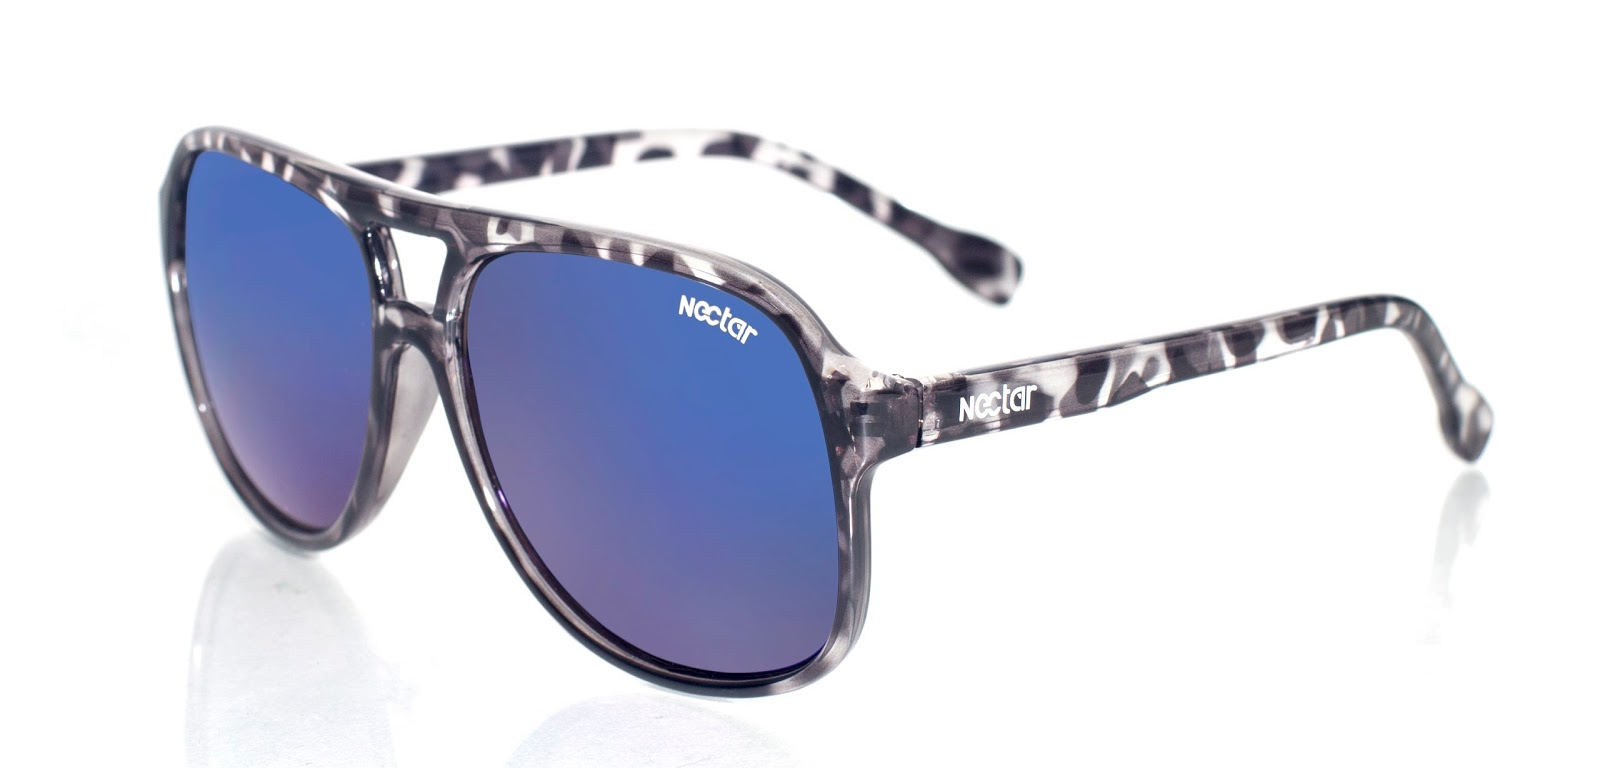 2612de54397 ... flexible thermoplastic memory frame specifically designed for maximum  comfort. These chic Vegas frame sunglasses boasts a black tortoise frame  made from ...